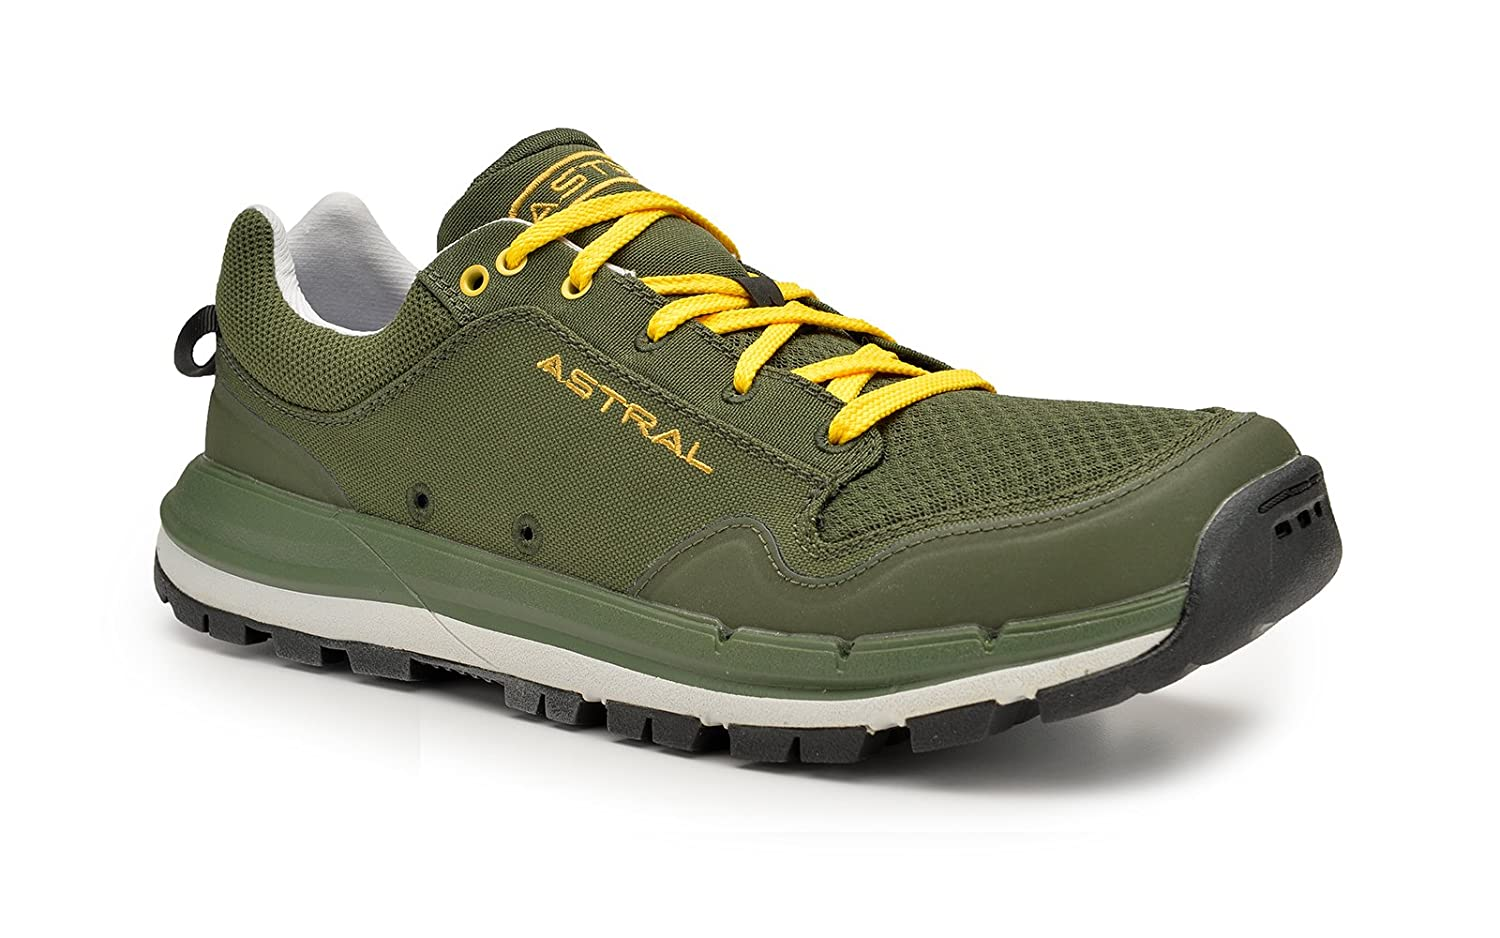 Astral TR1 Junction Men's Water Hiking Shoe B01M0MPL28 M14.0 Sequoia Green